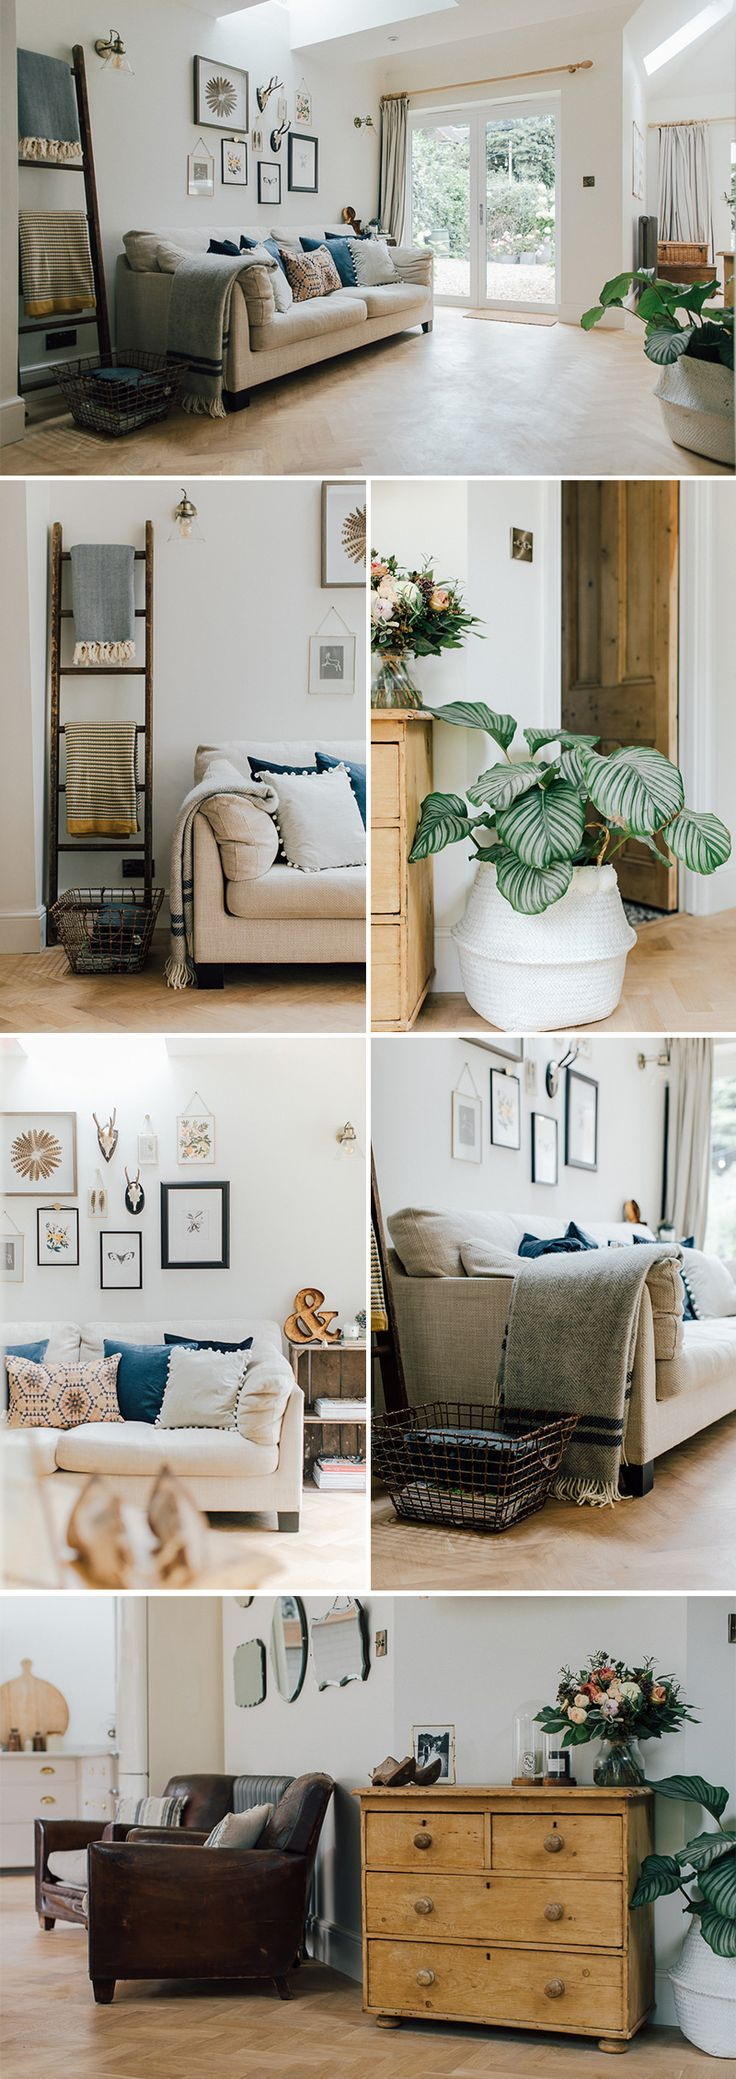 A modern open plan country snug | Kitchen lounge area inspiration | Kitchen sofa | How to style a sofa | Large palm plant | battered leather chairs | reclaimed side board | Pine chest of drawers | wicker basket | scaffold board table | eames dining chair |